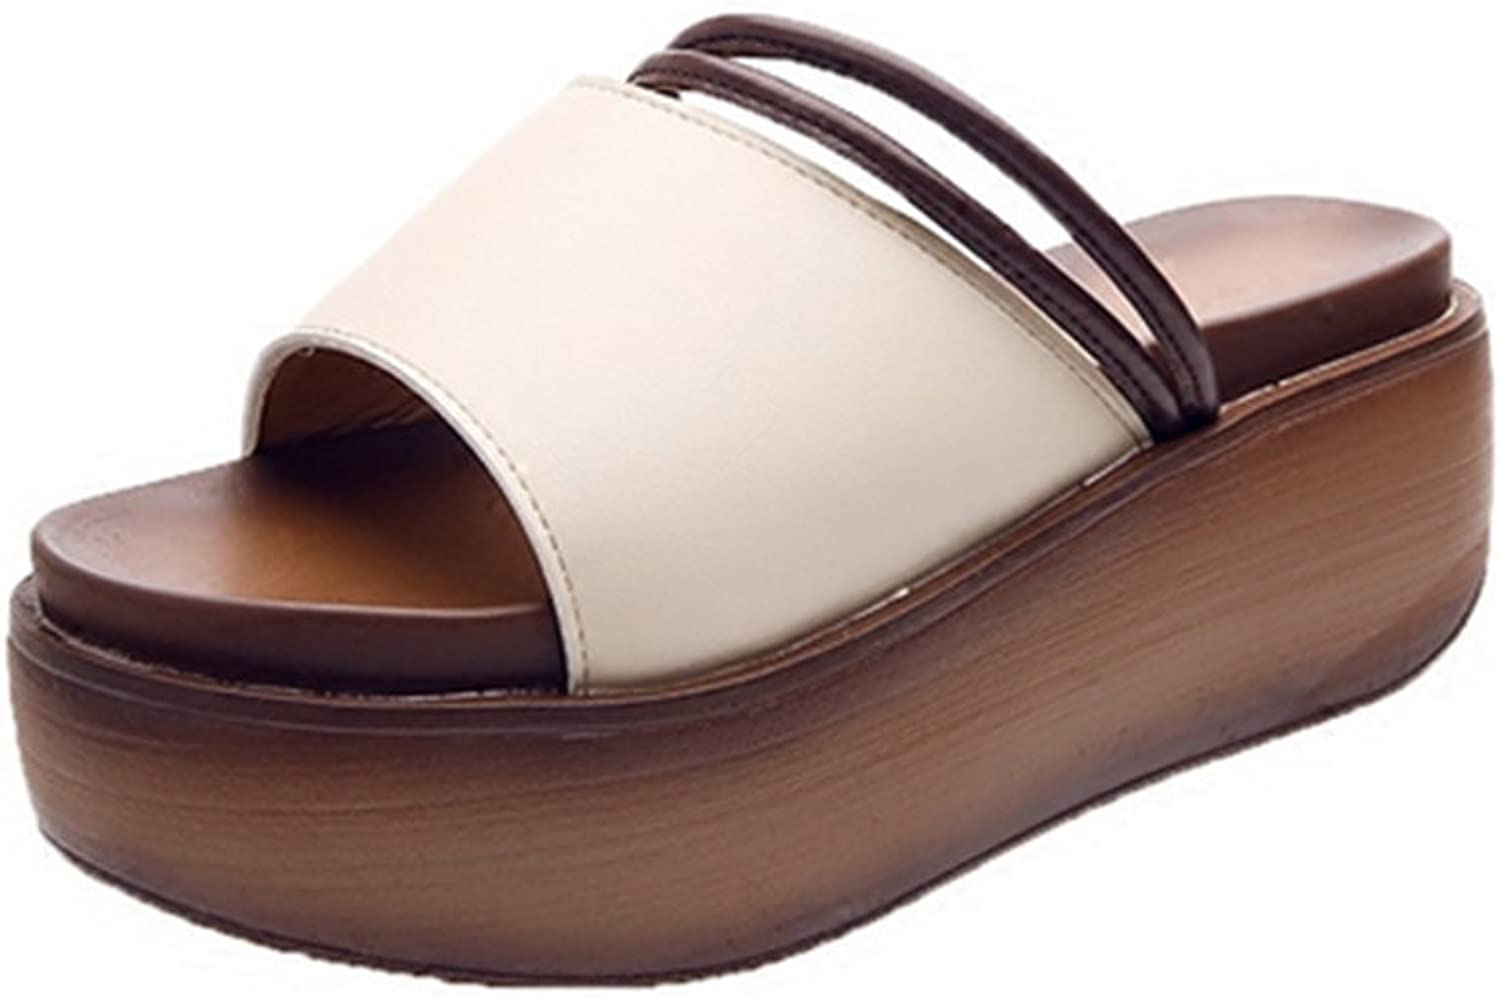 Weiwei Women's Summer Thick-Soled Sandals and Slippers, Sleek, Simple Breathable, Soft Wedge High Heel Slippers